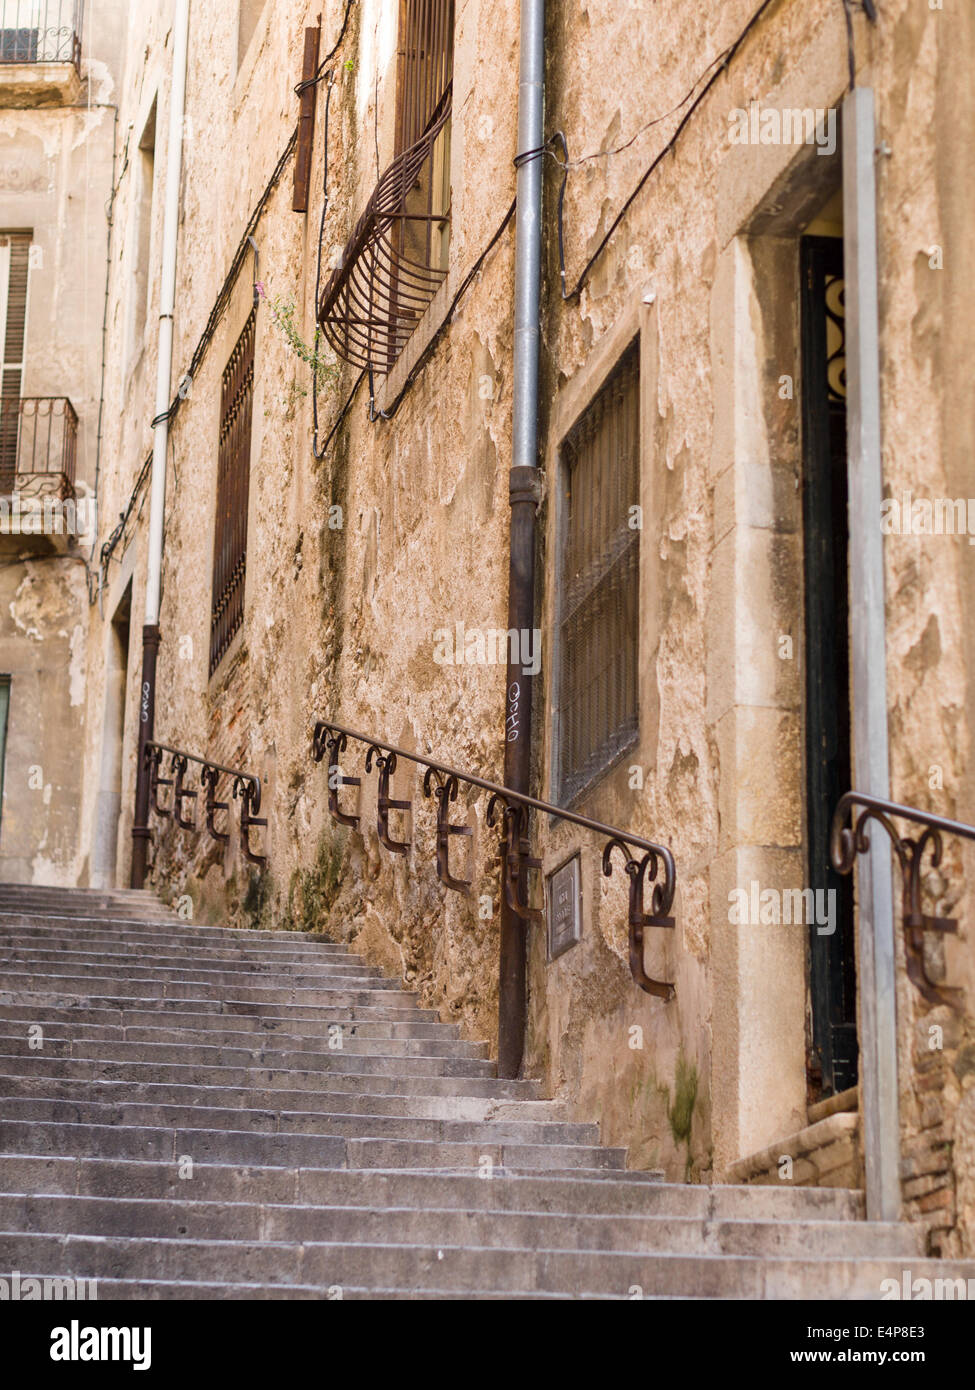 Girona Steep Street Stair. A stone staircase in the old town ghetto of Girona. Iron handrails help with the climb. - Stock Image